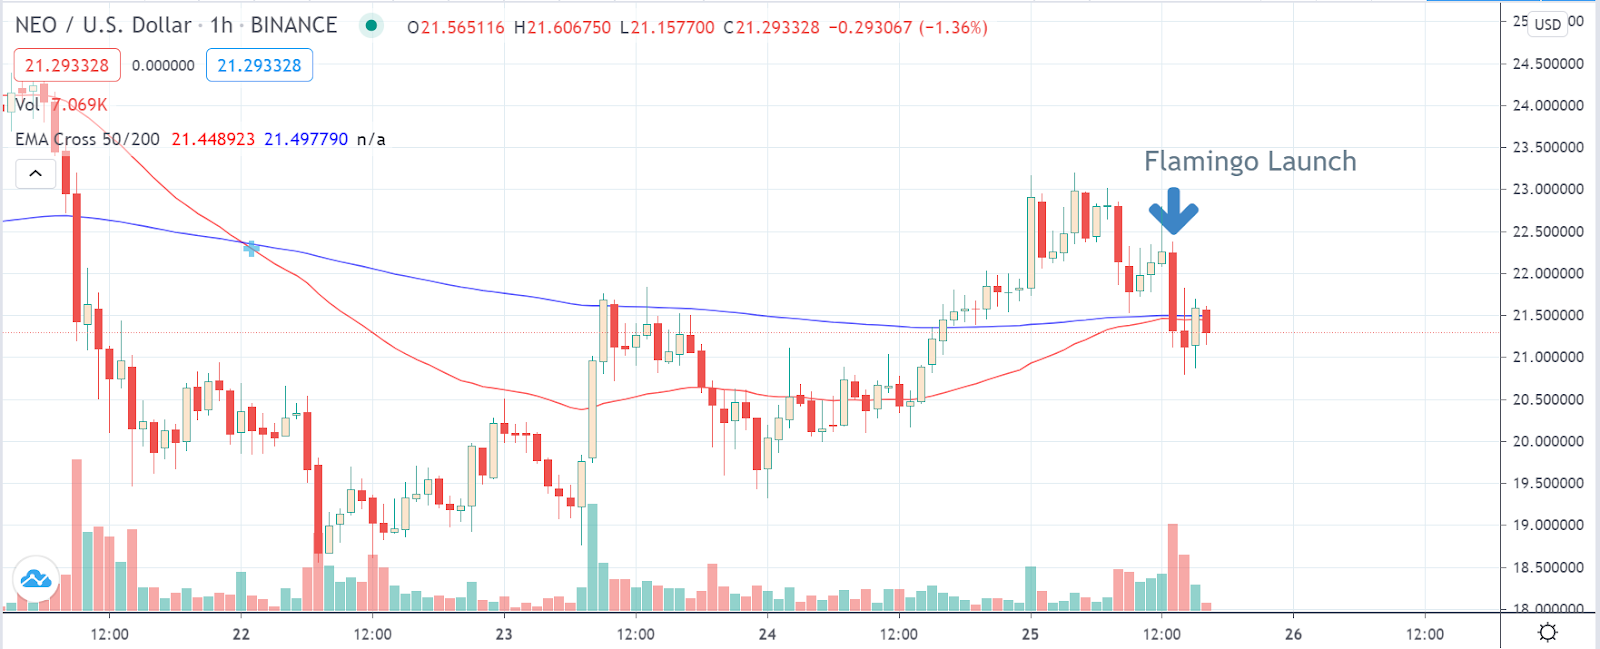 NEO / US dollar chart on TradingView showing the price drop